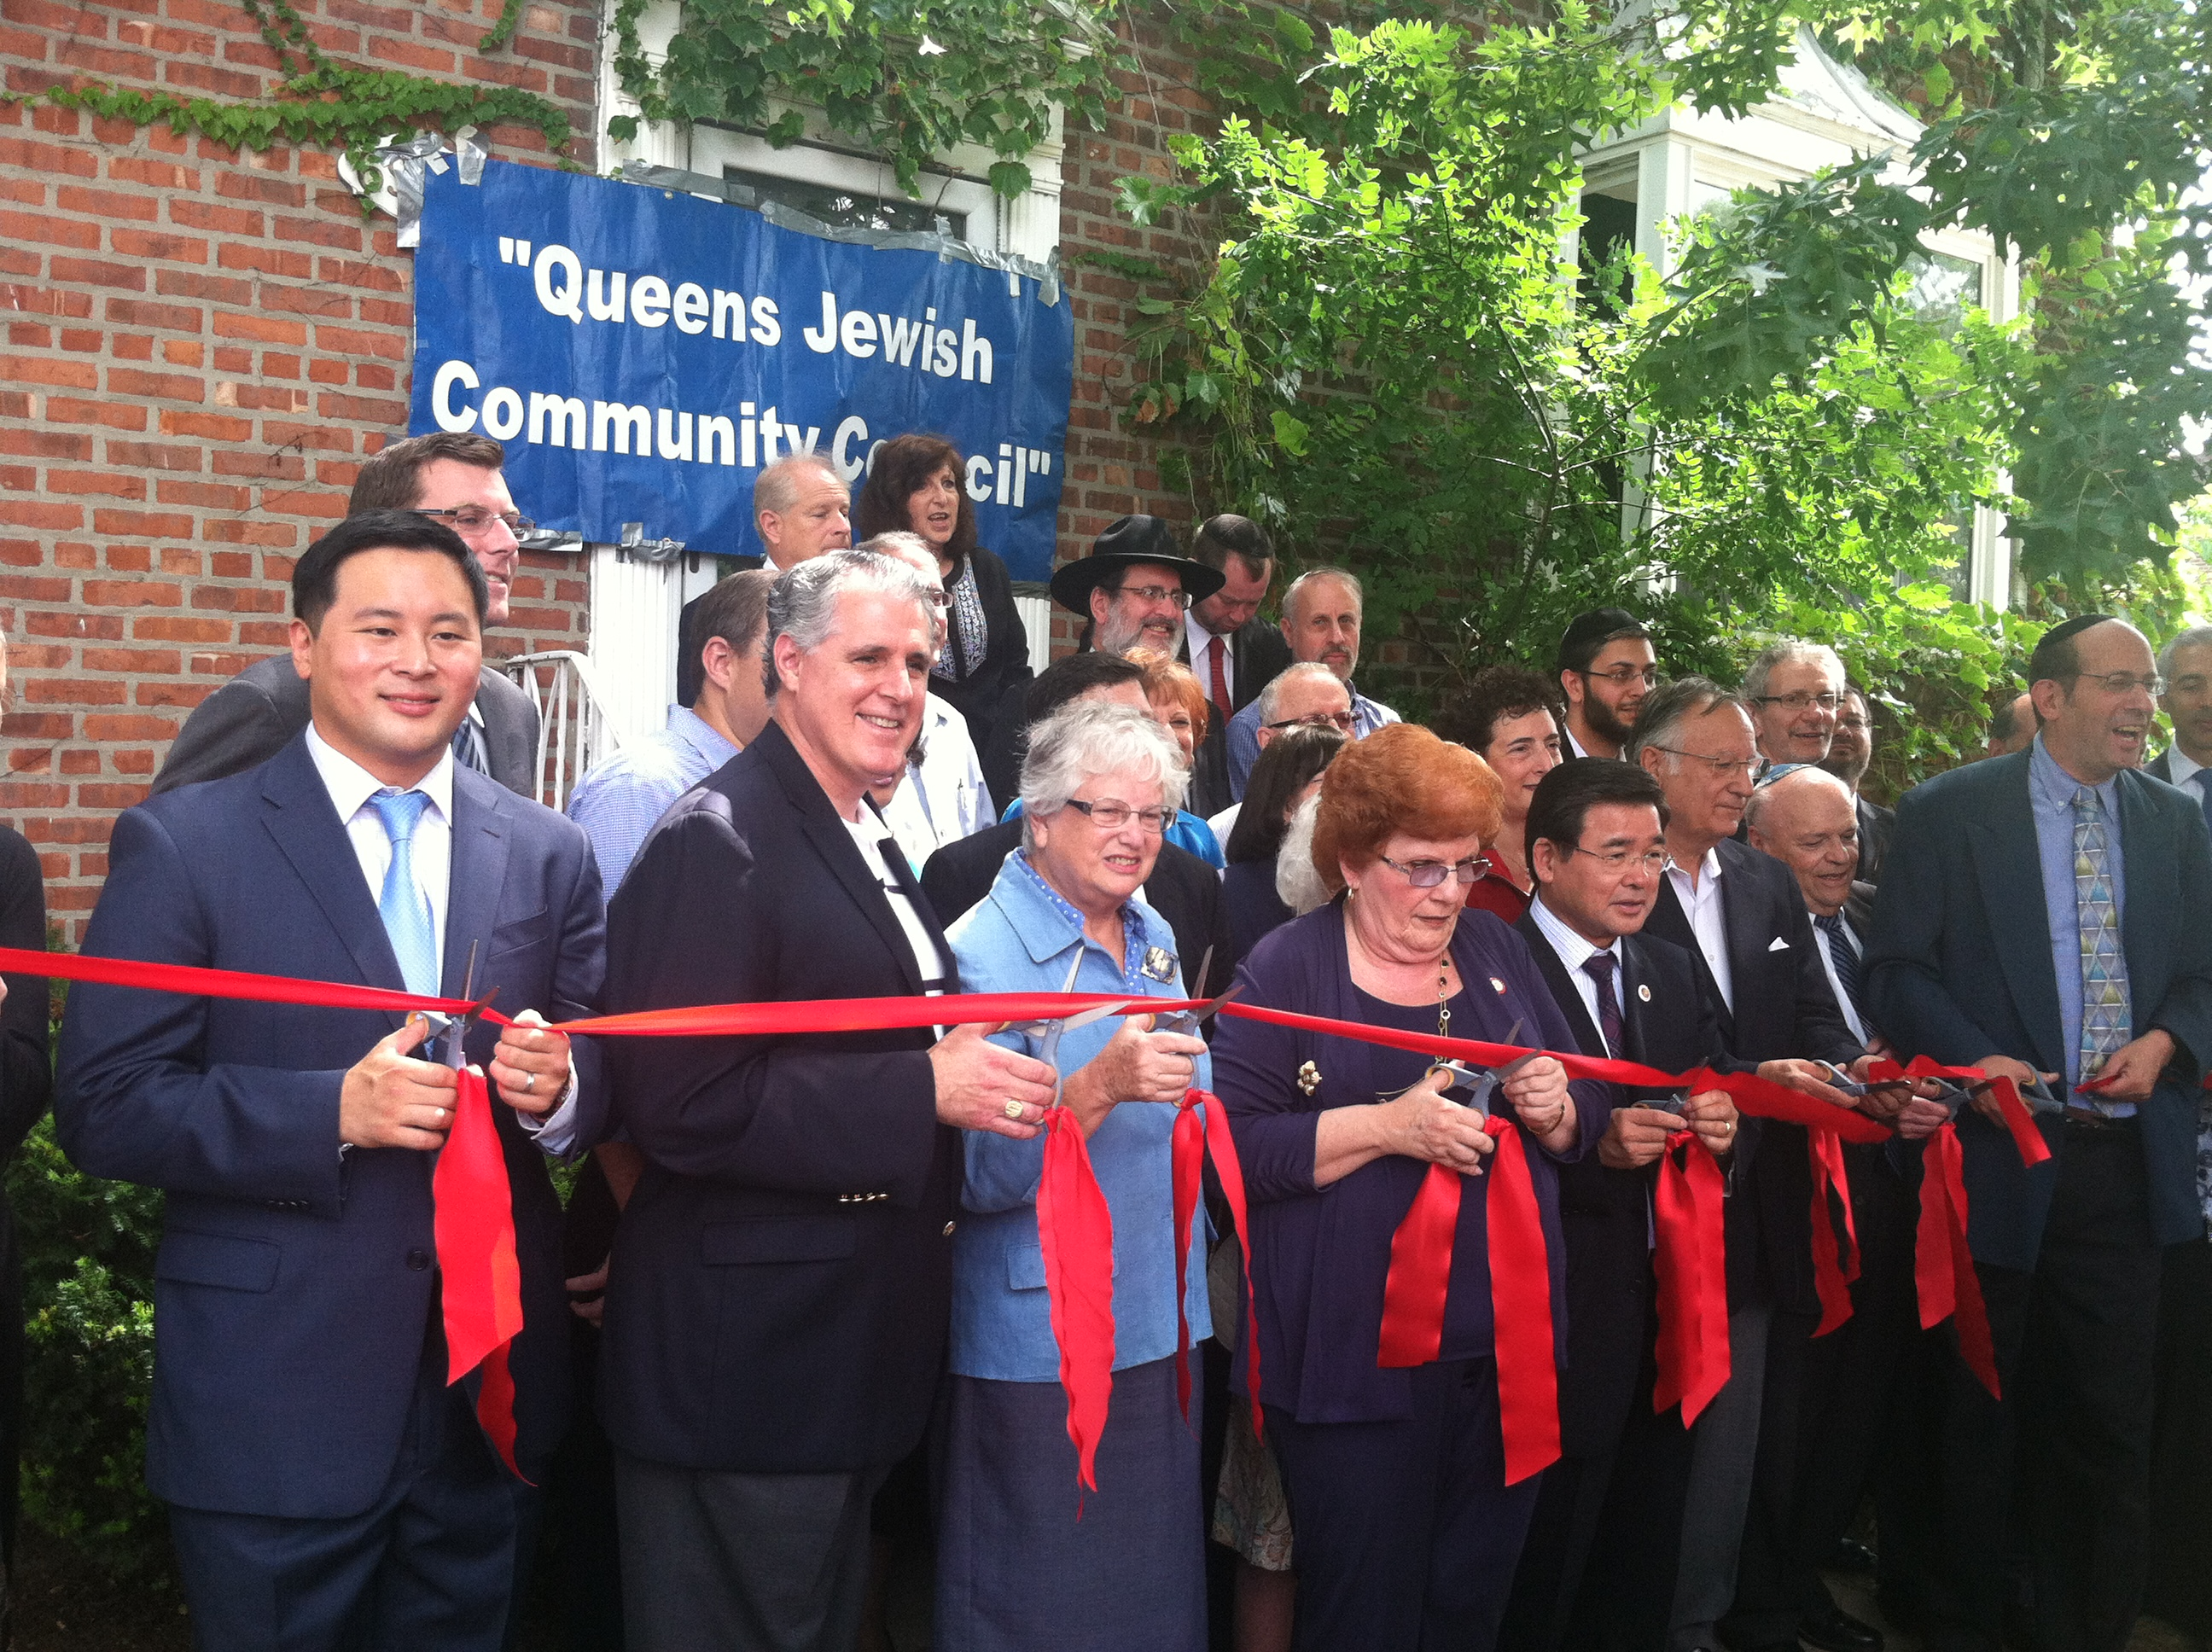 On Wednesday, July 31, 2013, Assemblyman Braunstein attended the Queens Jewish Community Council's Ribbon Cutting Ceremony for its new location.